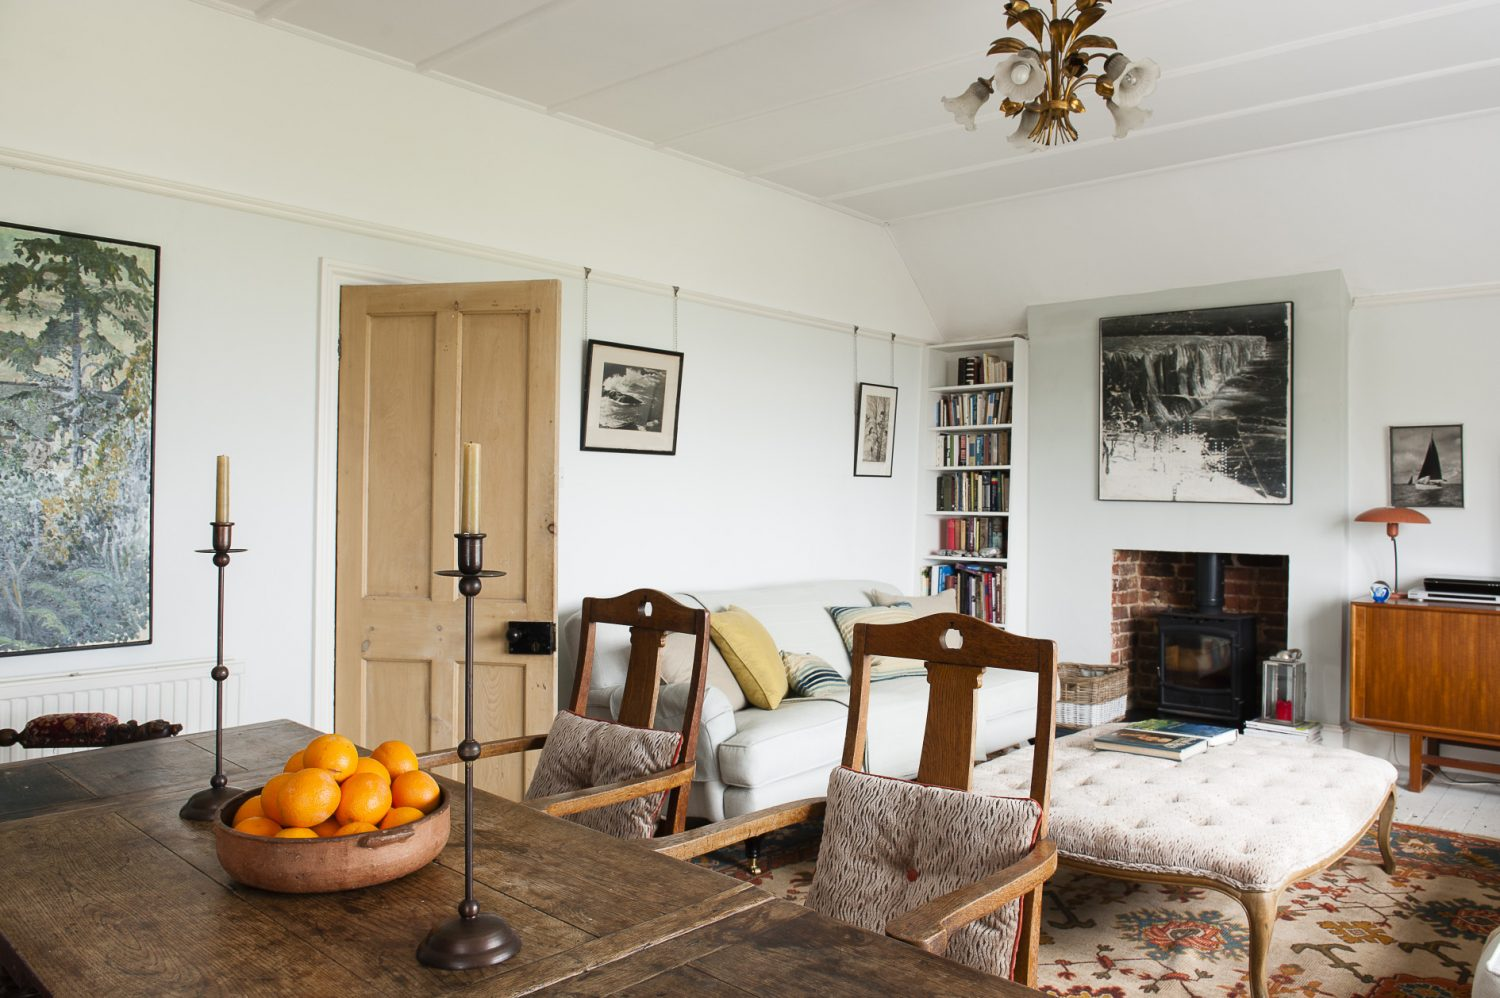 The downstairs flat's dining area is almost a mirror image of the flat above (pictured above), except with antique pieces